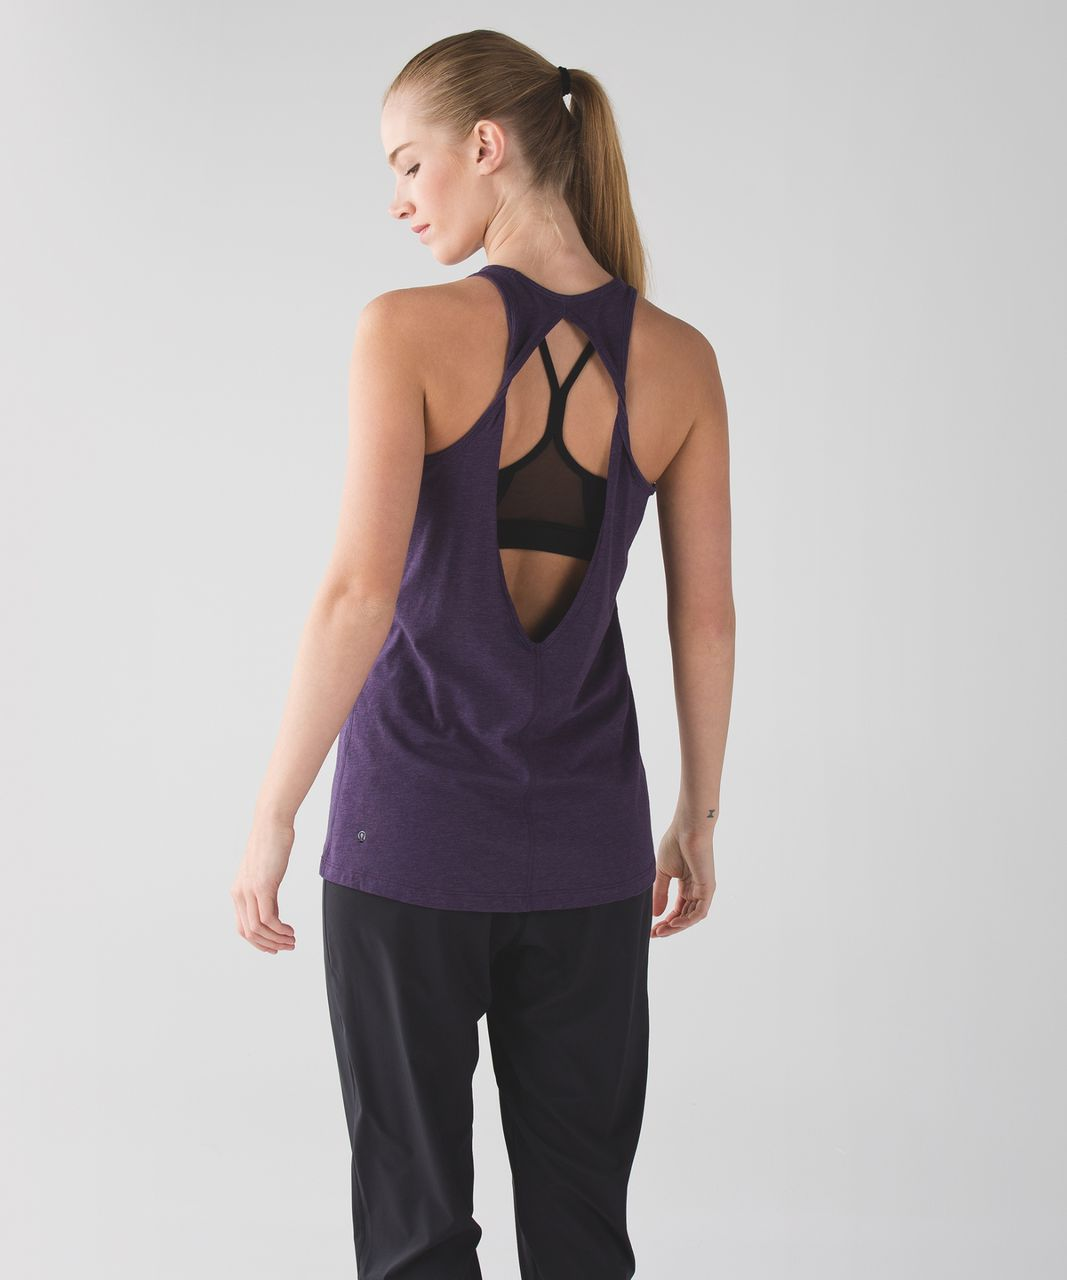 Lululemon Trapeze Twist Tank - Heathered Deep Zinfandel